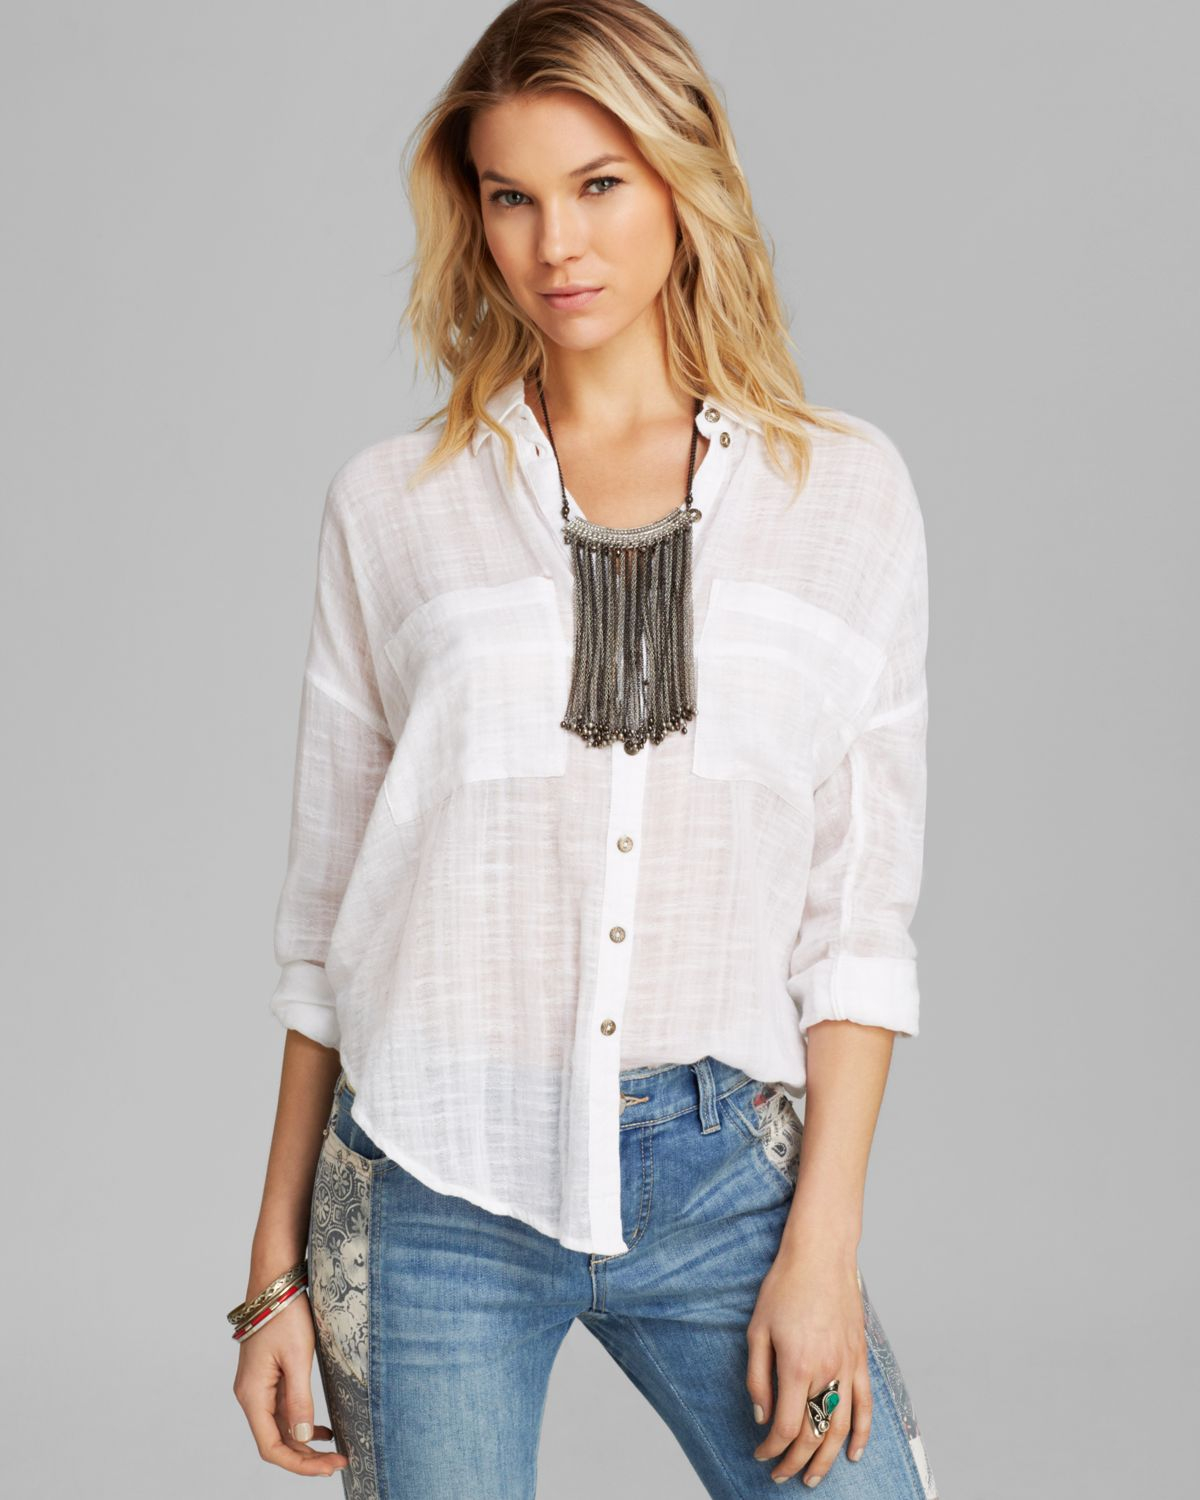 2c5af7a08 Free People Top Shibori Siren Button Down in White - Lyst